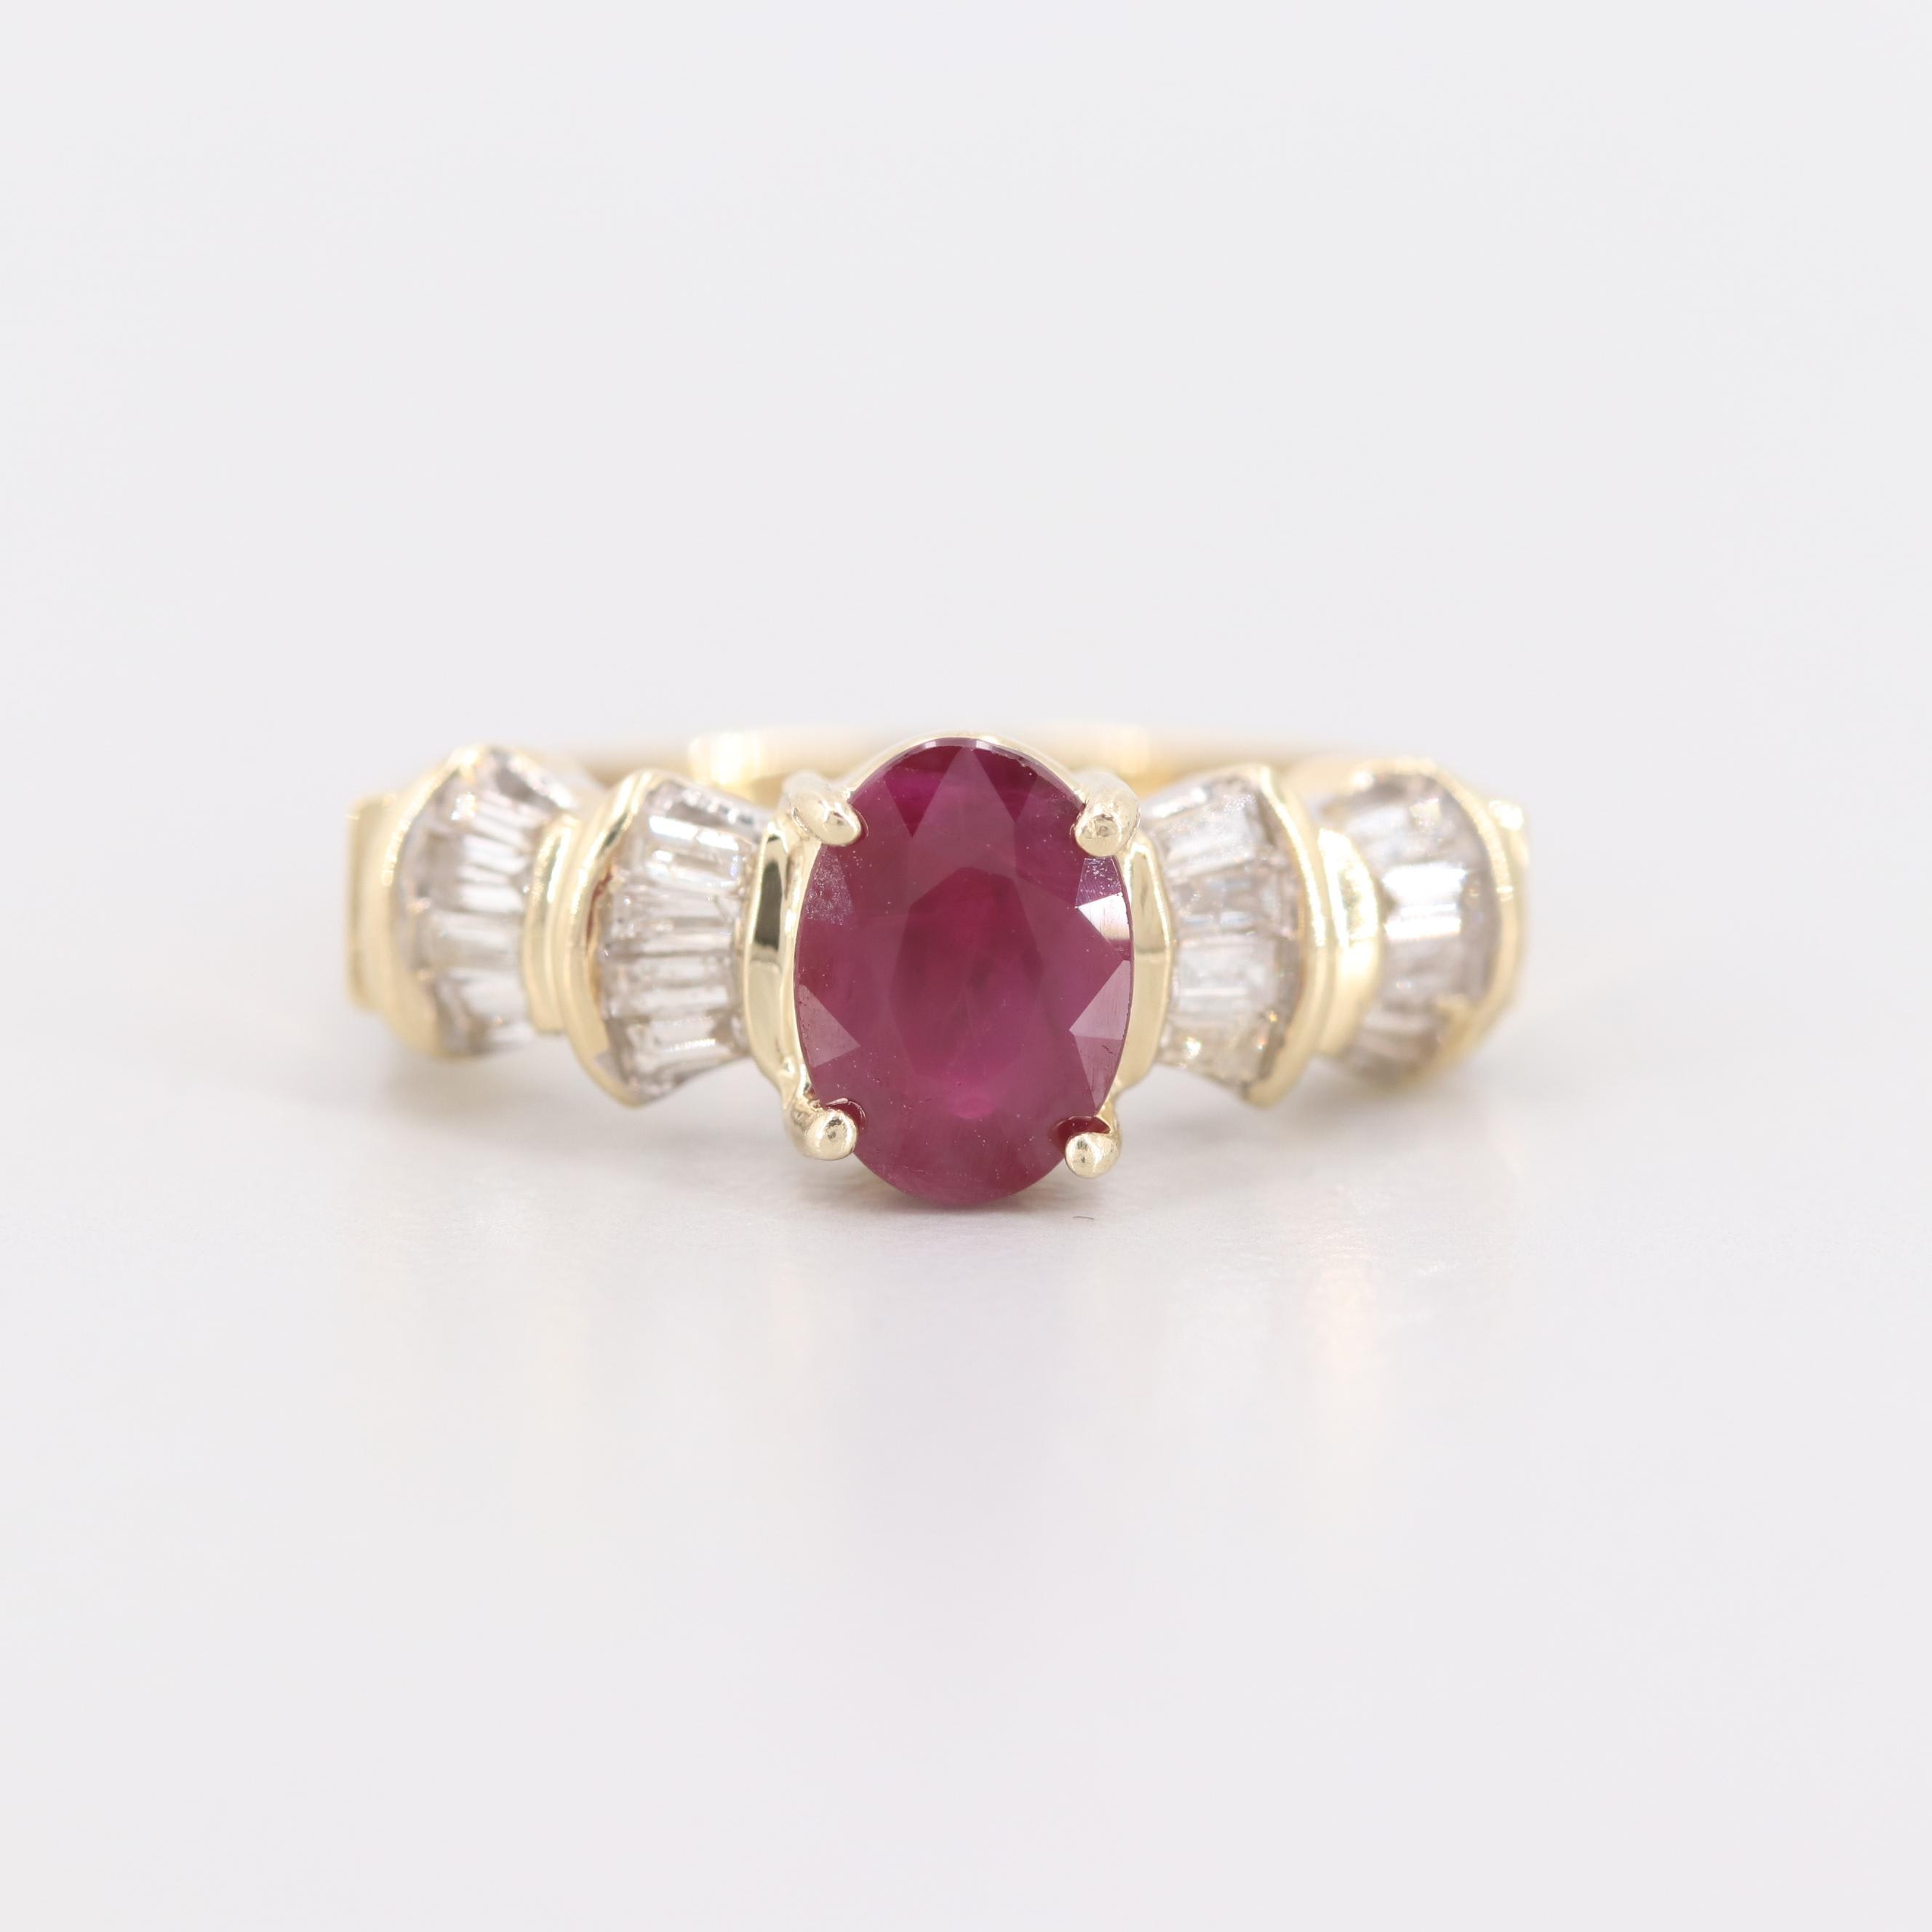 14K Yellow Gold 1.58 CT Ruby and Diamond Ring